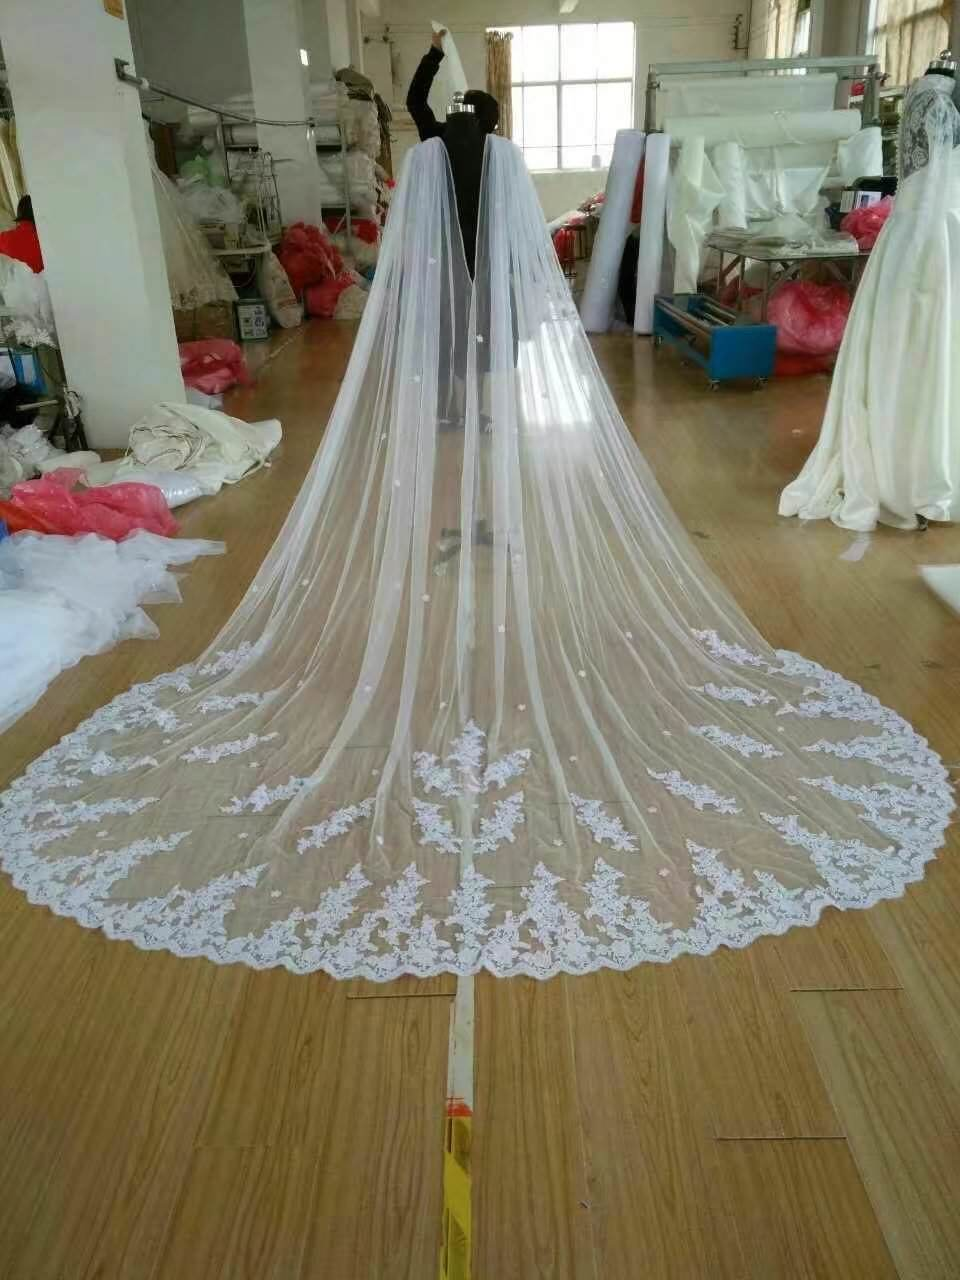 New Cathedral Length Bridal Cape Cloak Lace Long Wedding Dress Accessory in White,Off-white,Ivory